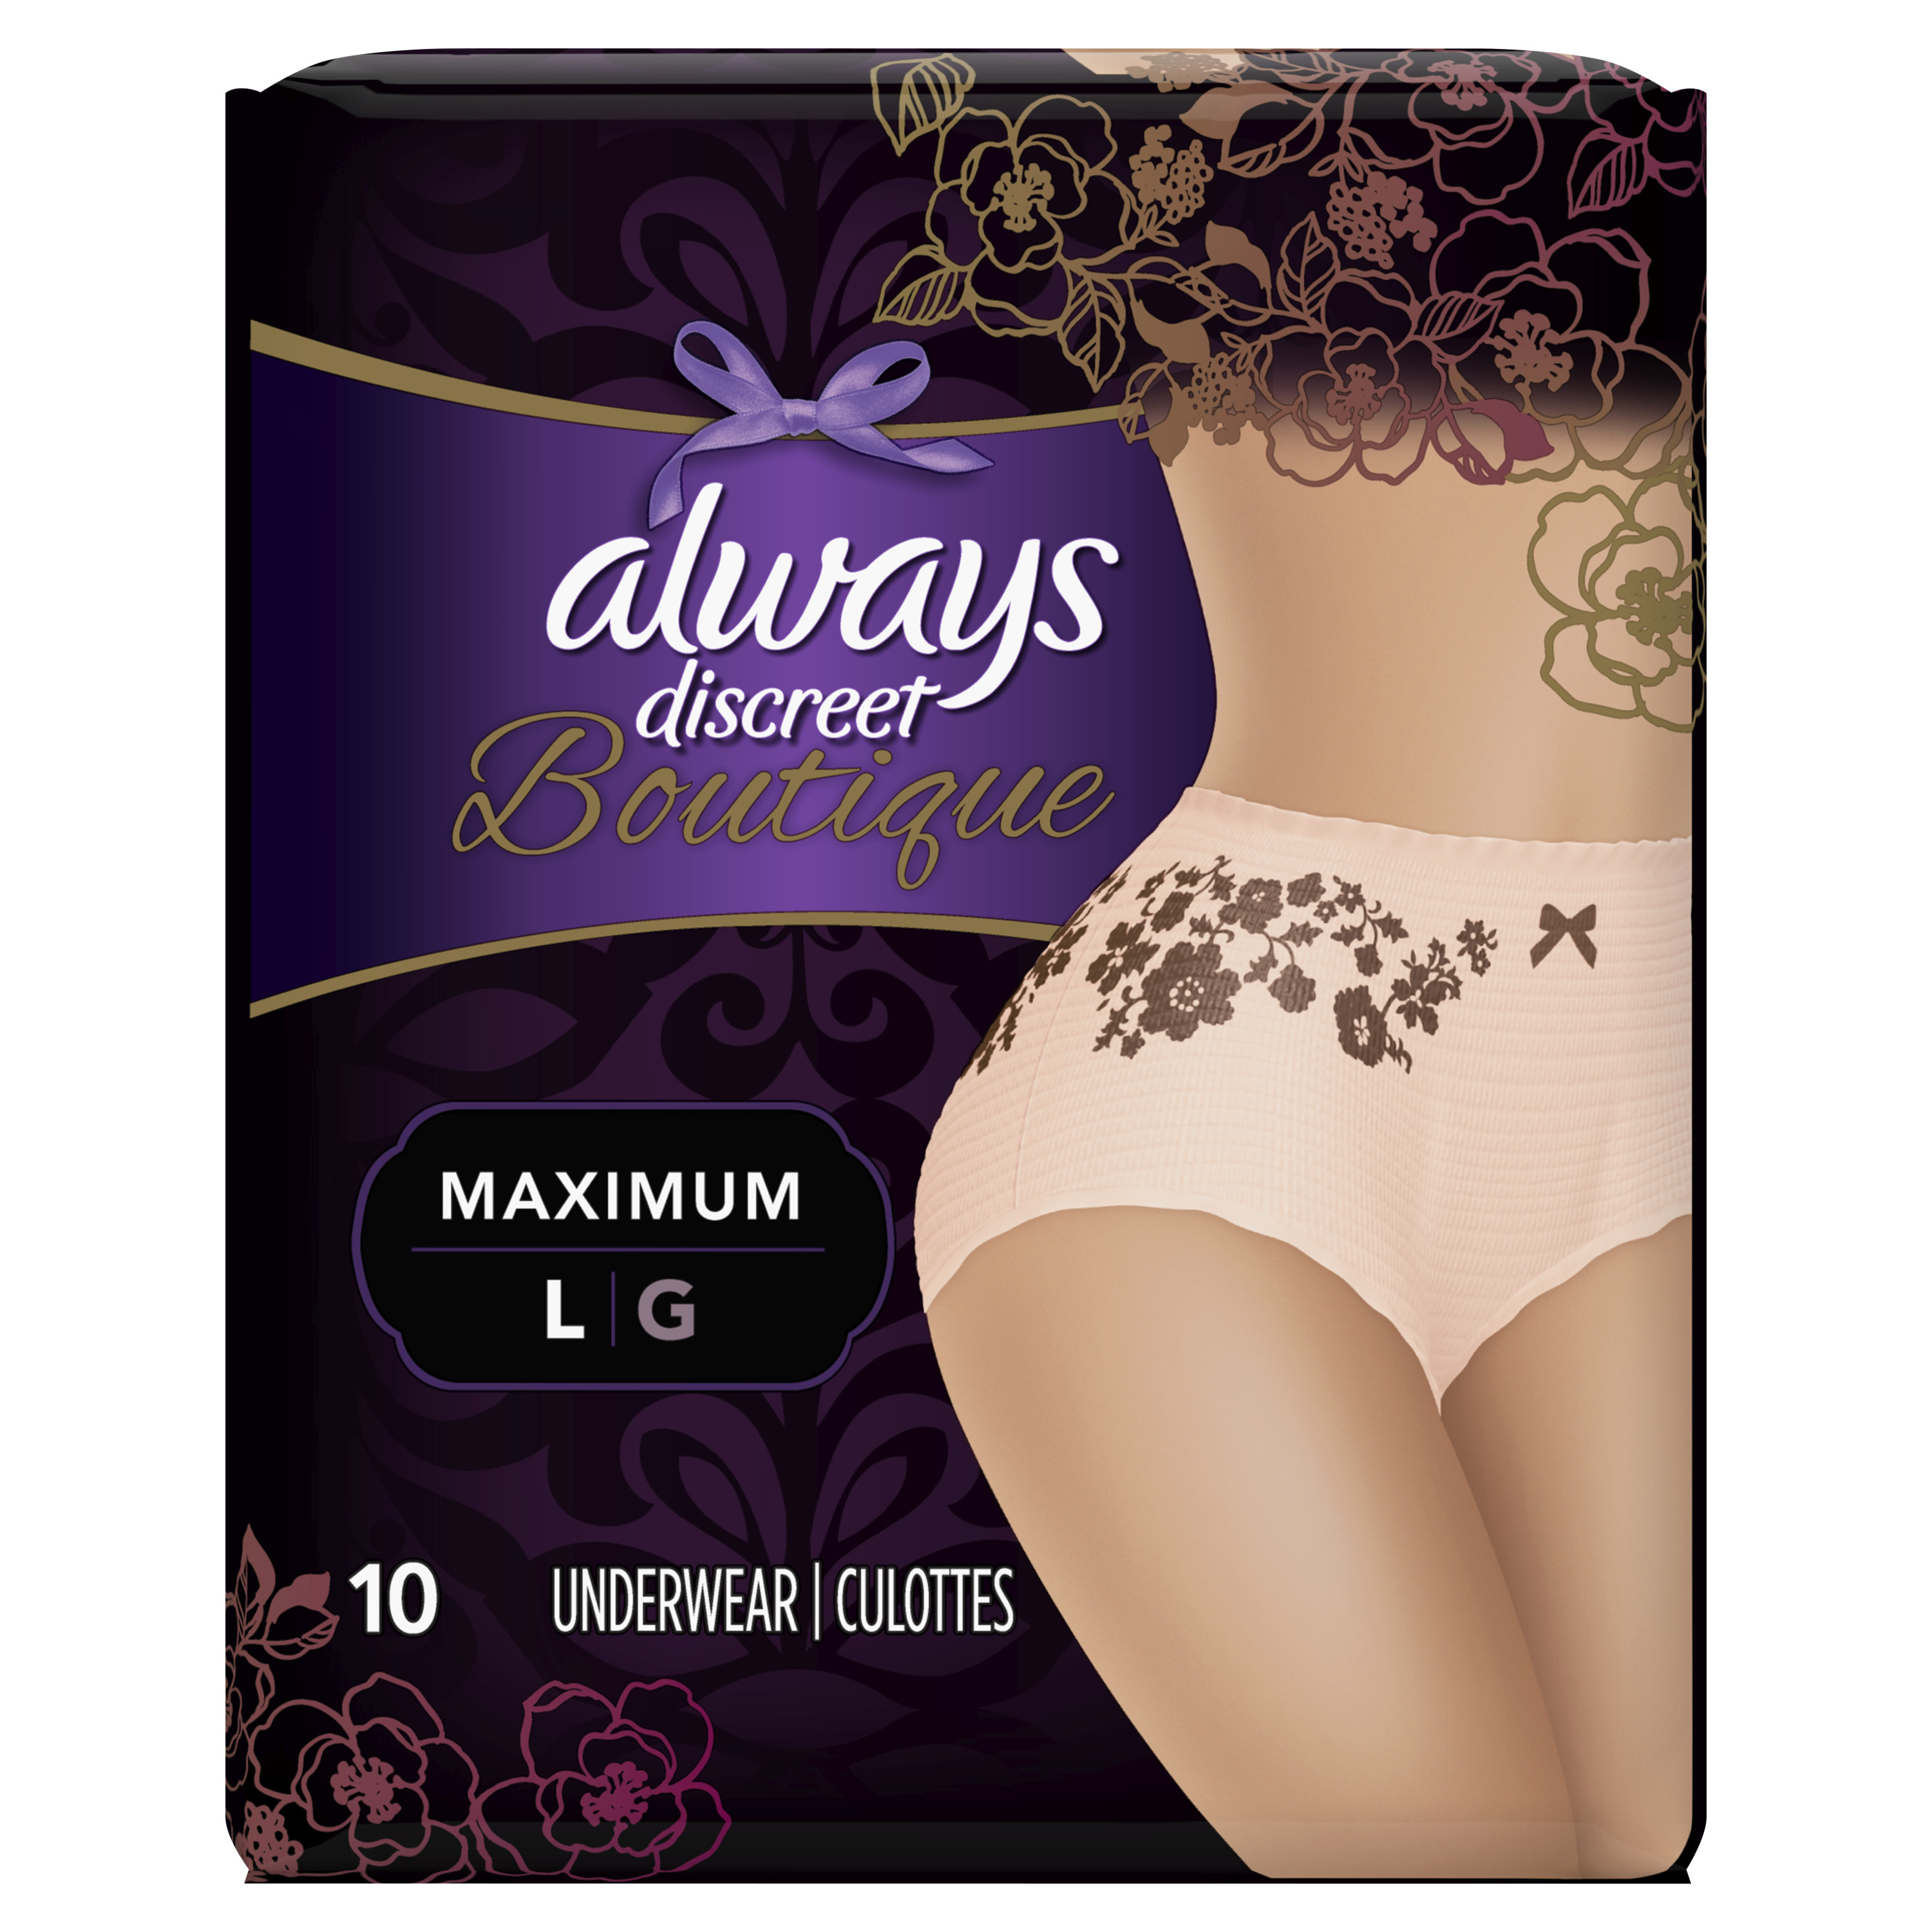 Always Discreet Boutique, Incontinence Underwear for Women, Maximum Protection, Peach, Large, 10 Count